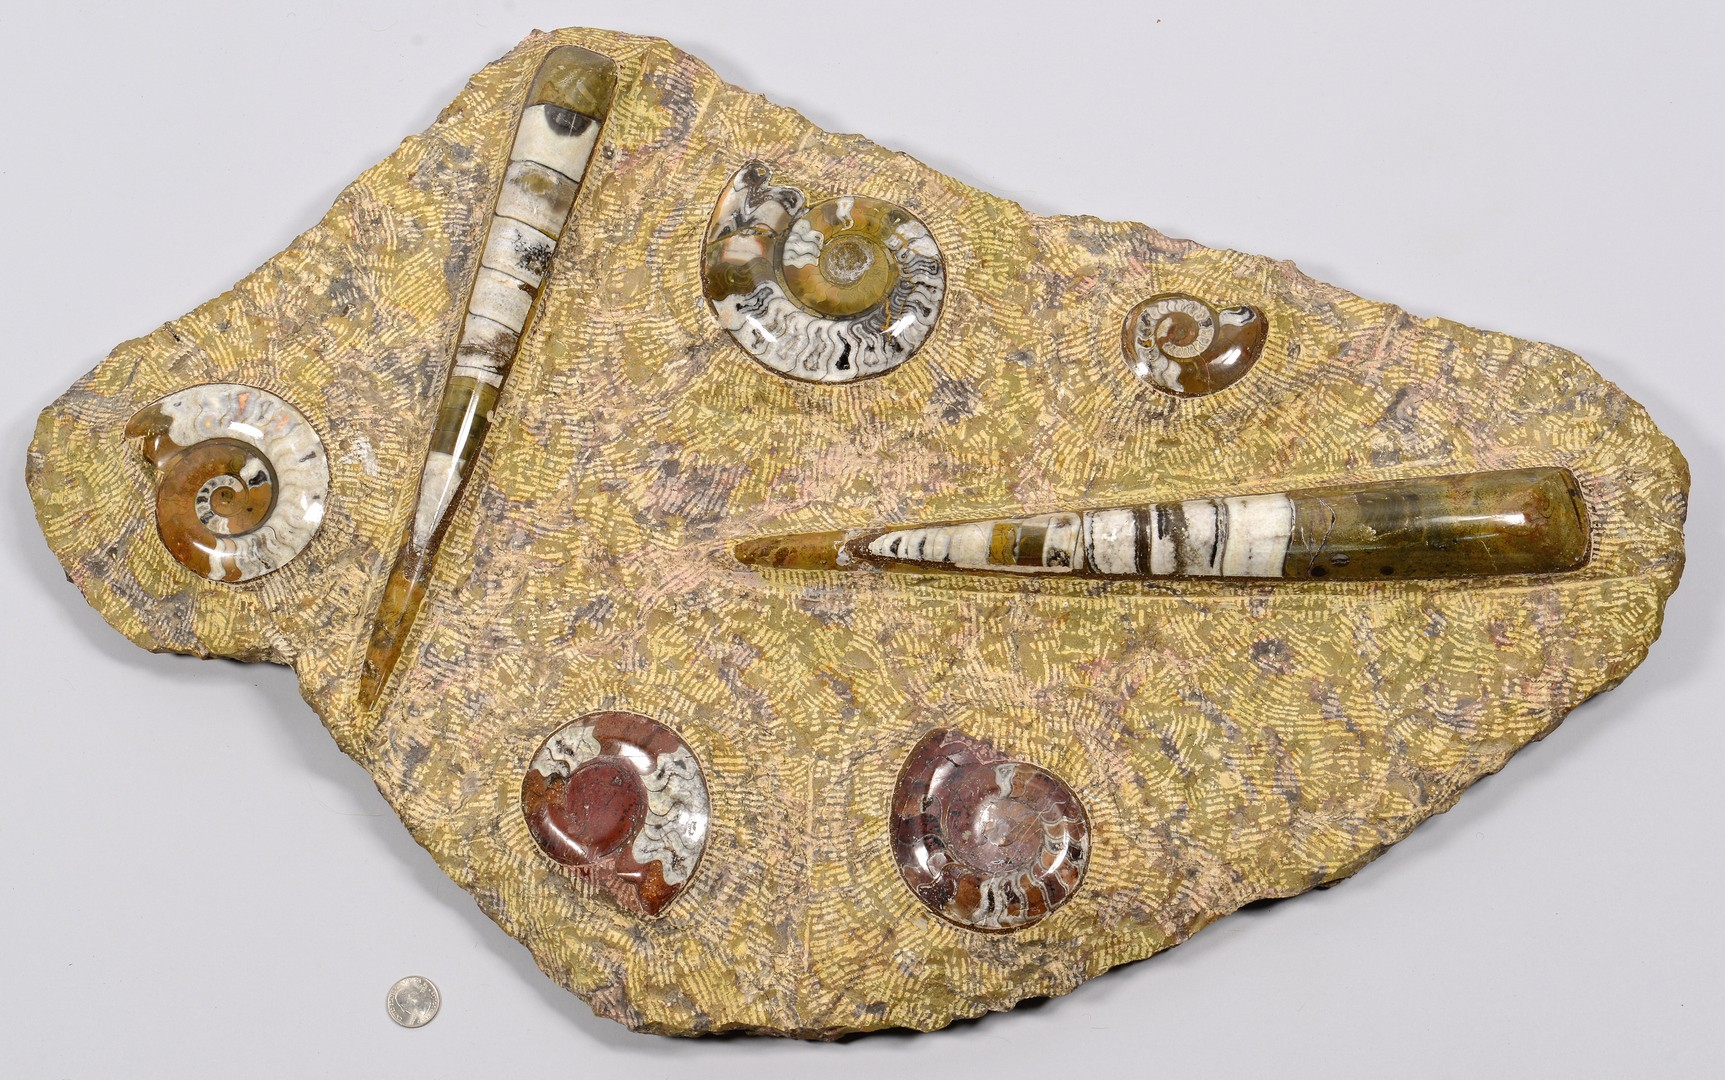 Lot 862: Fossil Slab with Nautilus & Shells